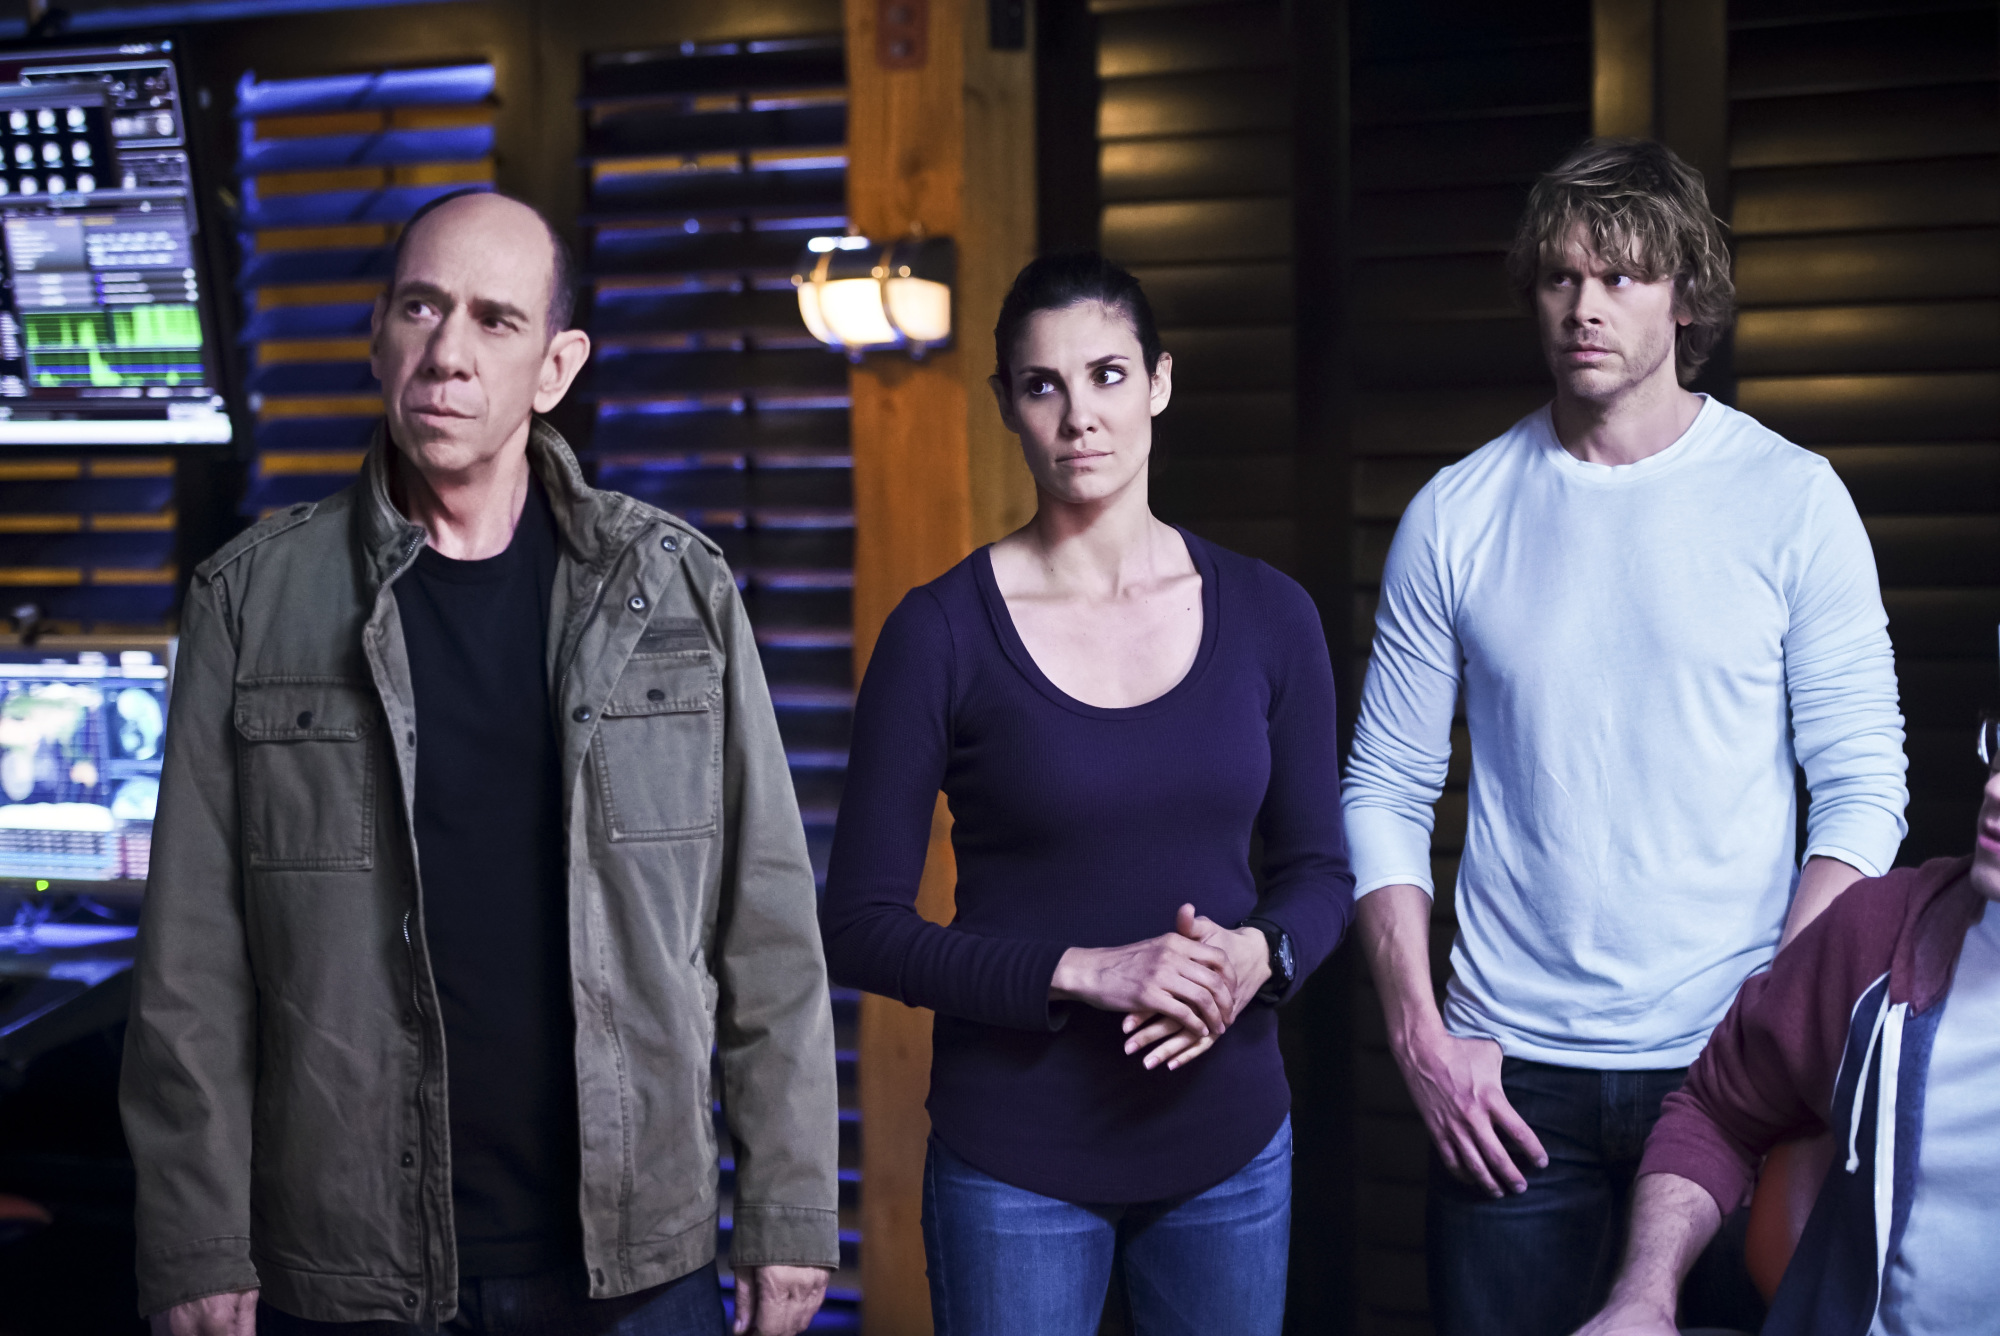 Miguel Ferrer as NCIS Assistant Director Owen Granger, Daniela Ruah as Special Agent Kensi Blye, and Eric Christian Olsen as LAPD Liaison Marty Deeks